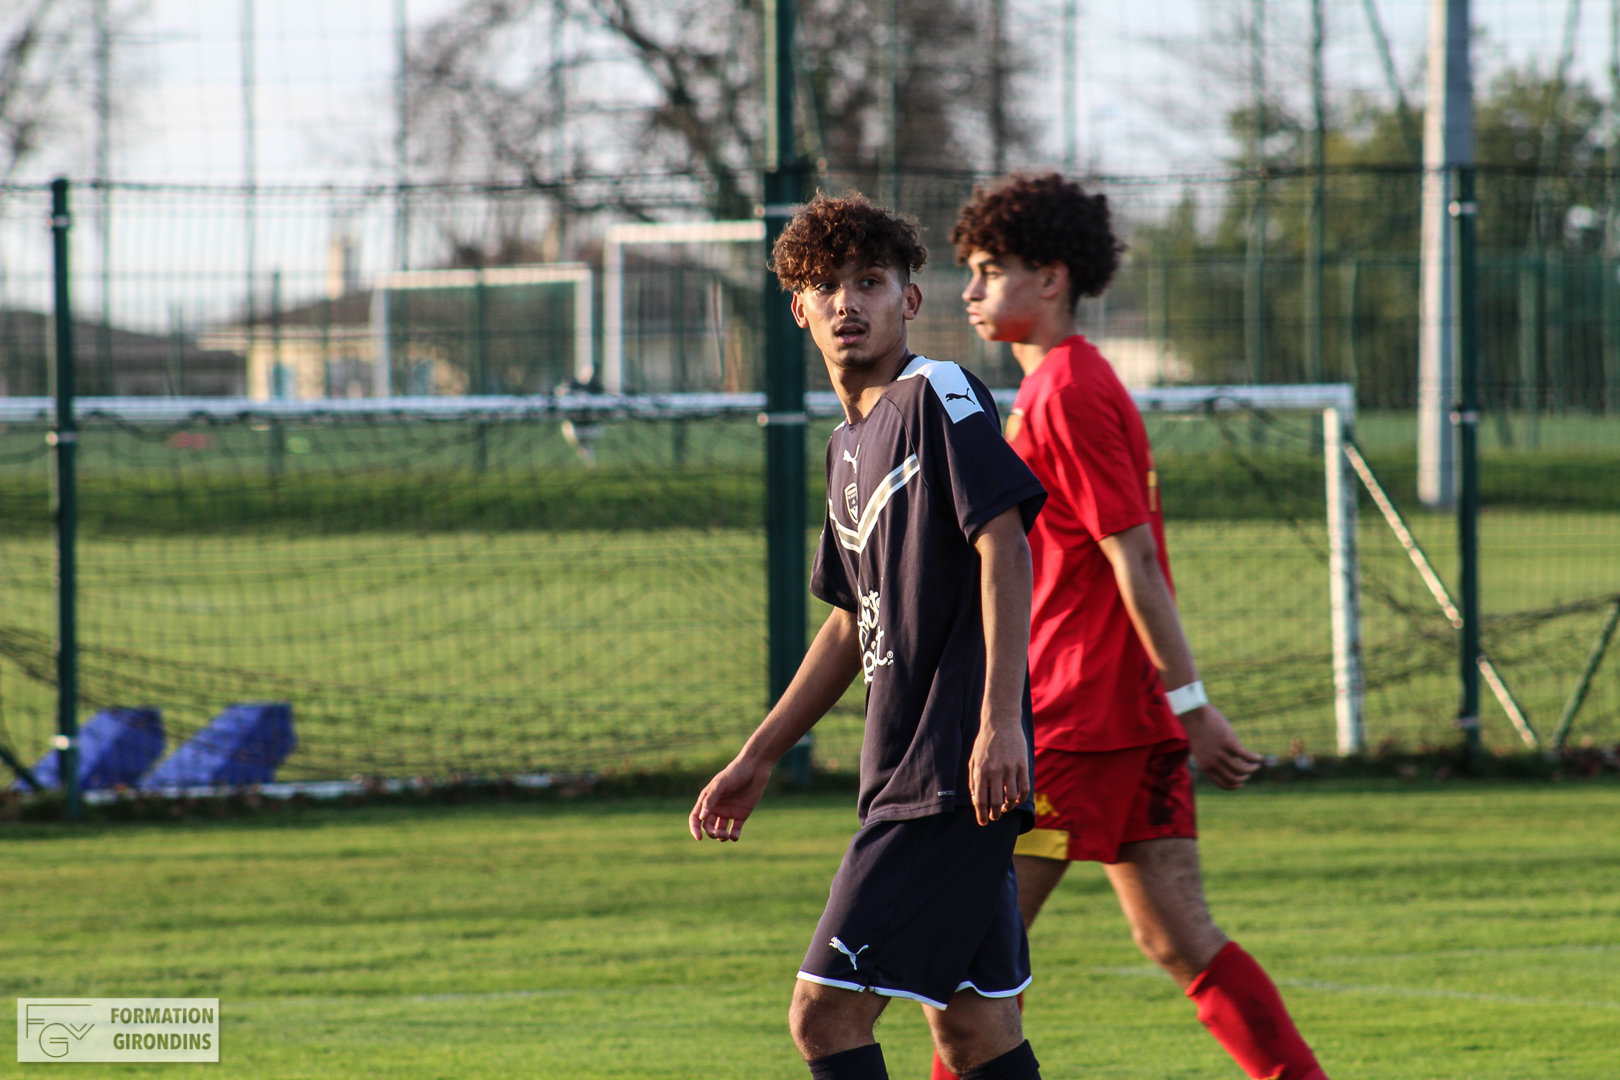 Cfa Girondins : Bordeaux s'incline face au Mans - Formation Girondins